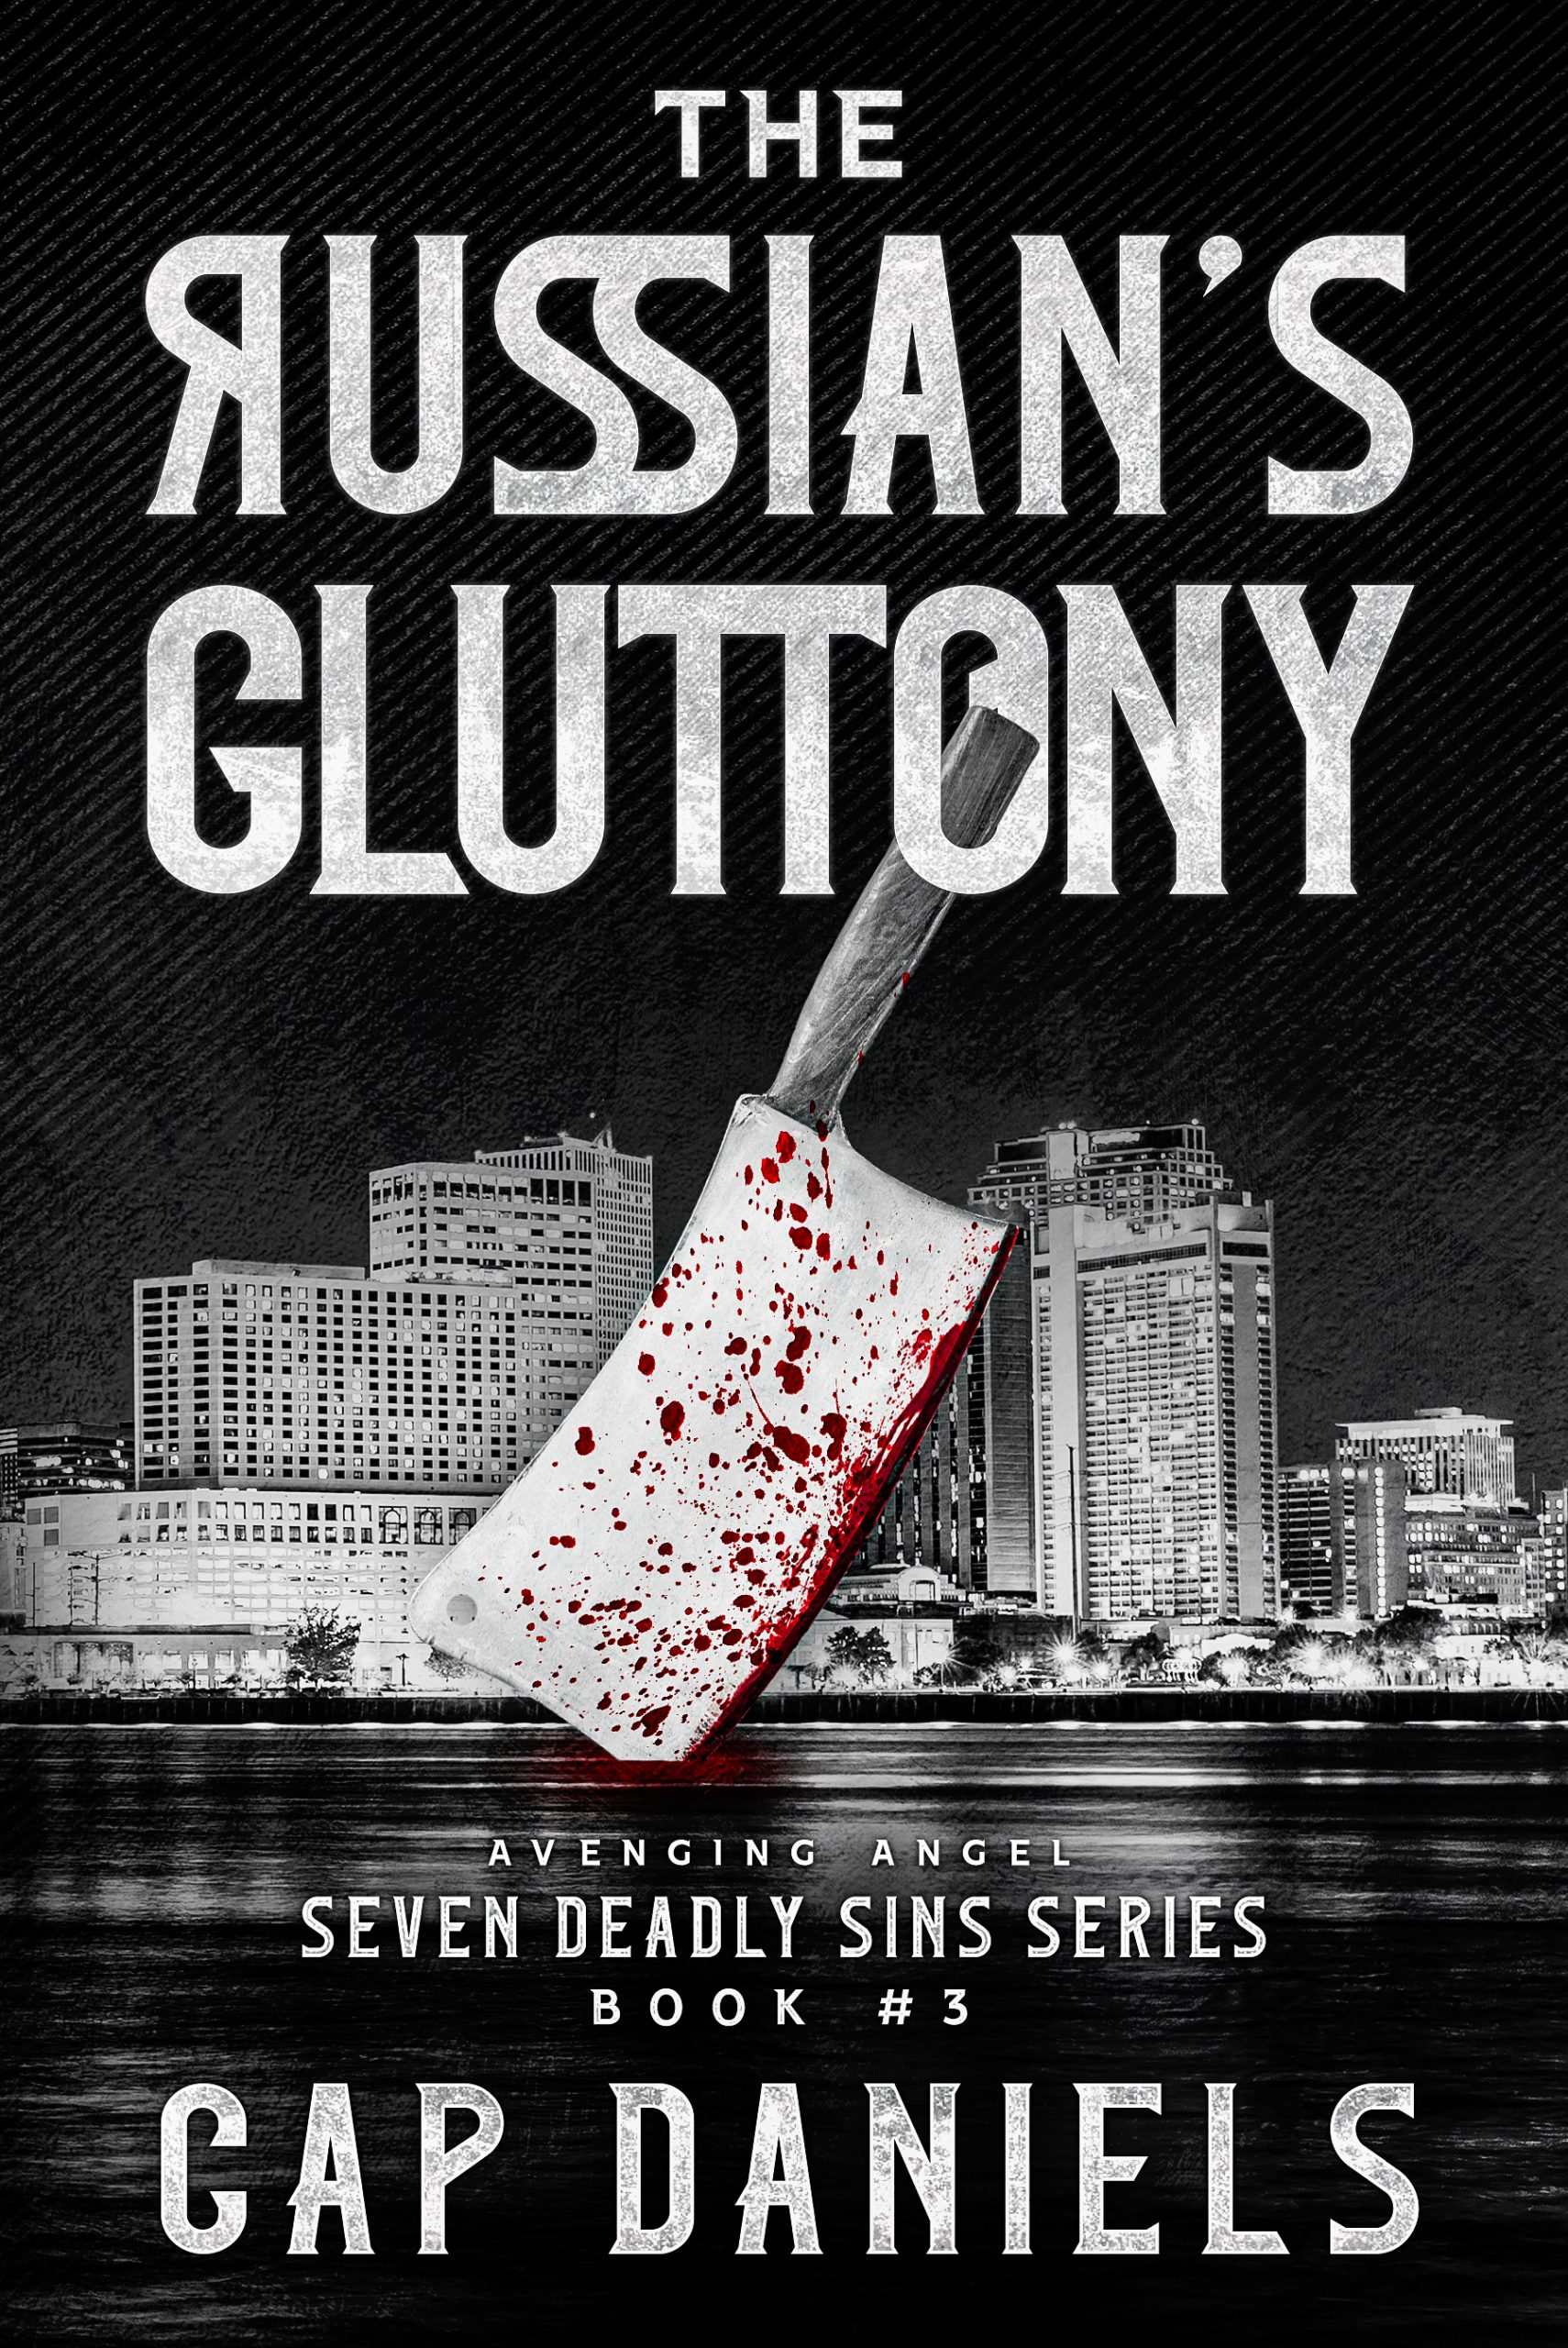 the_russian's_gluttony